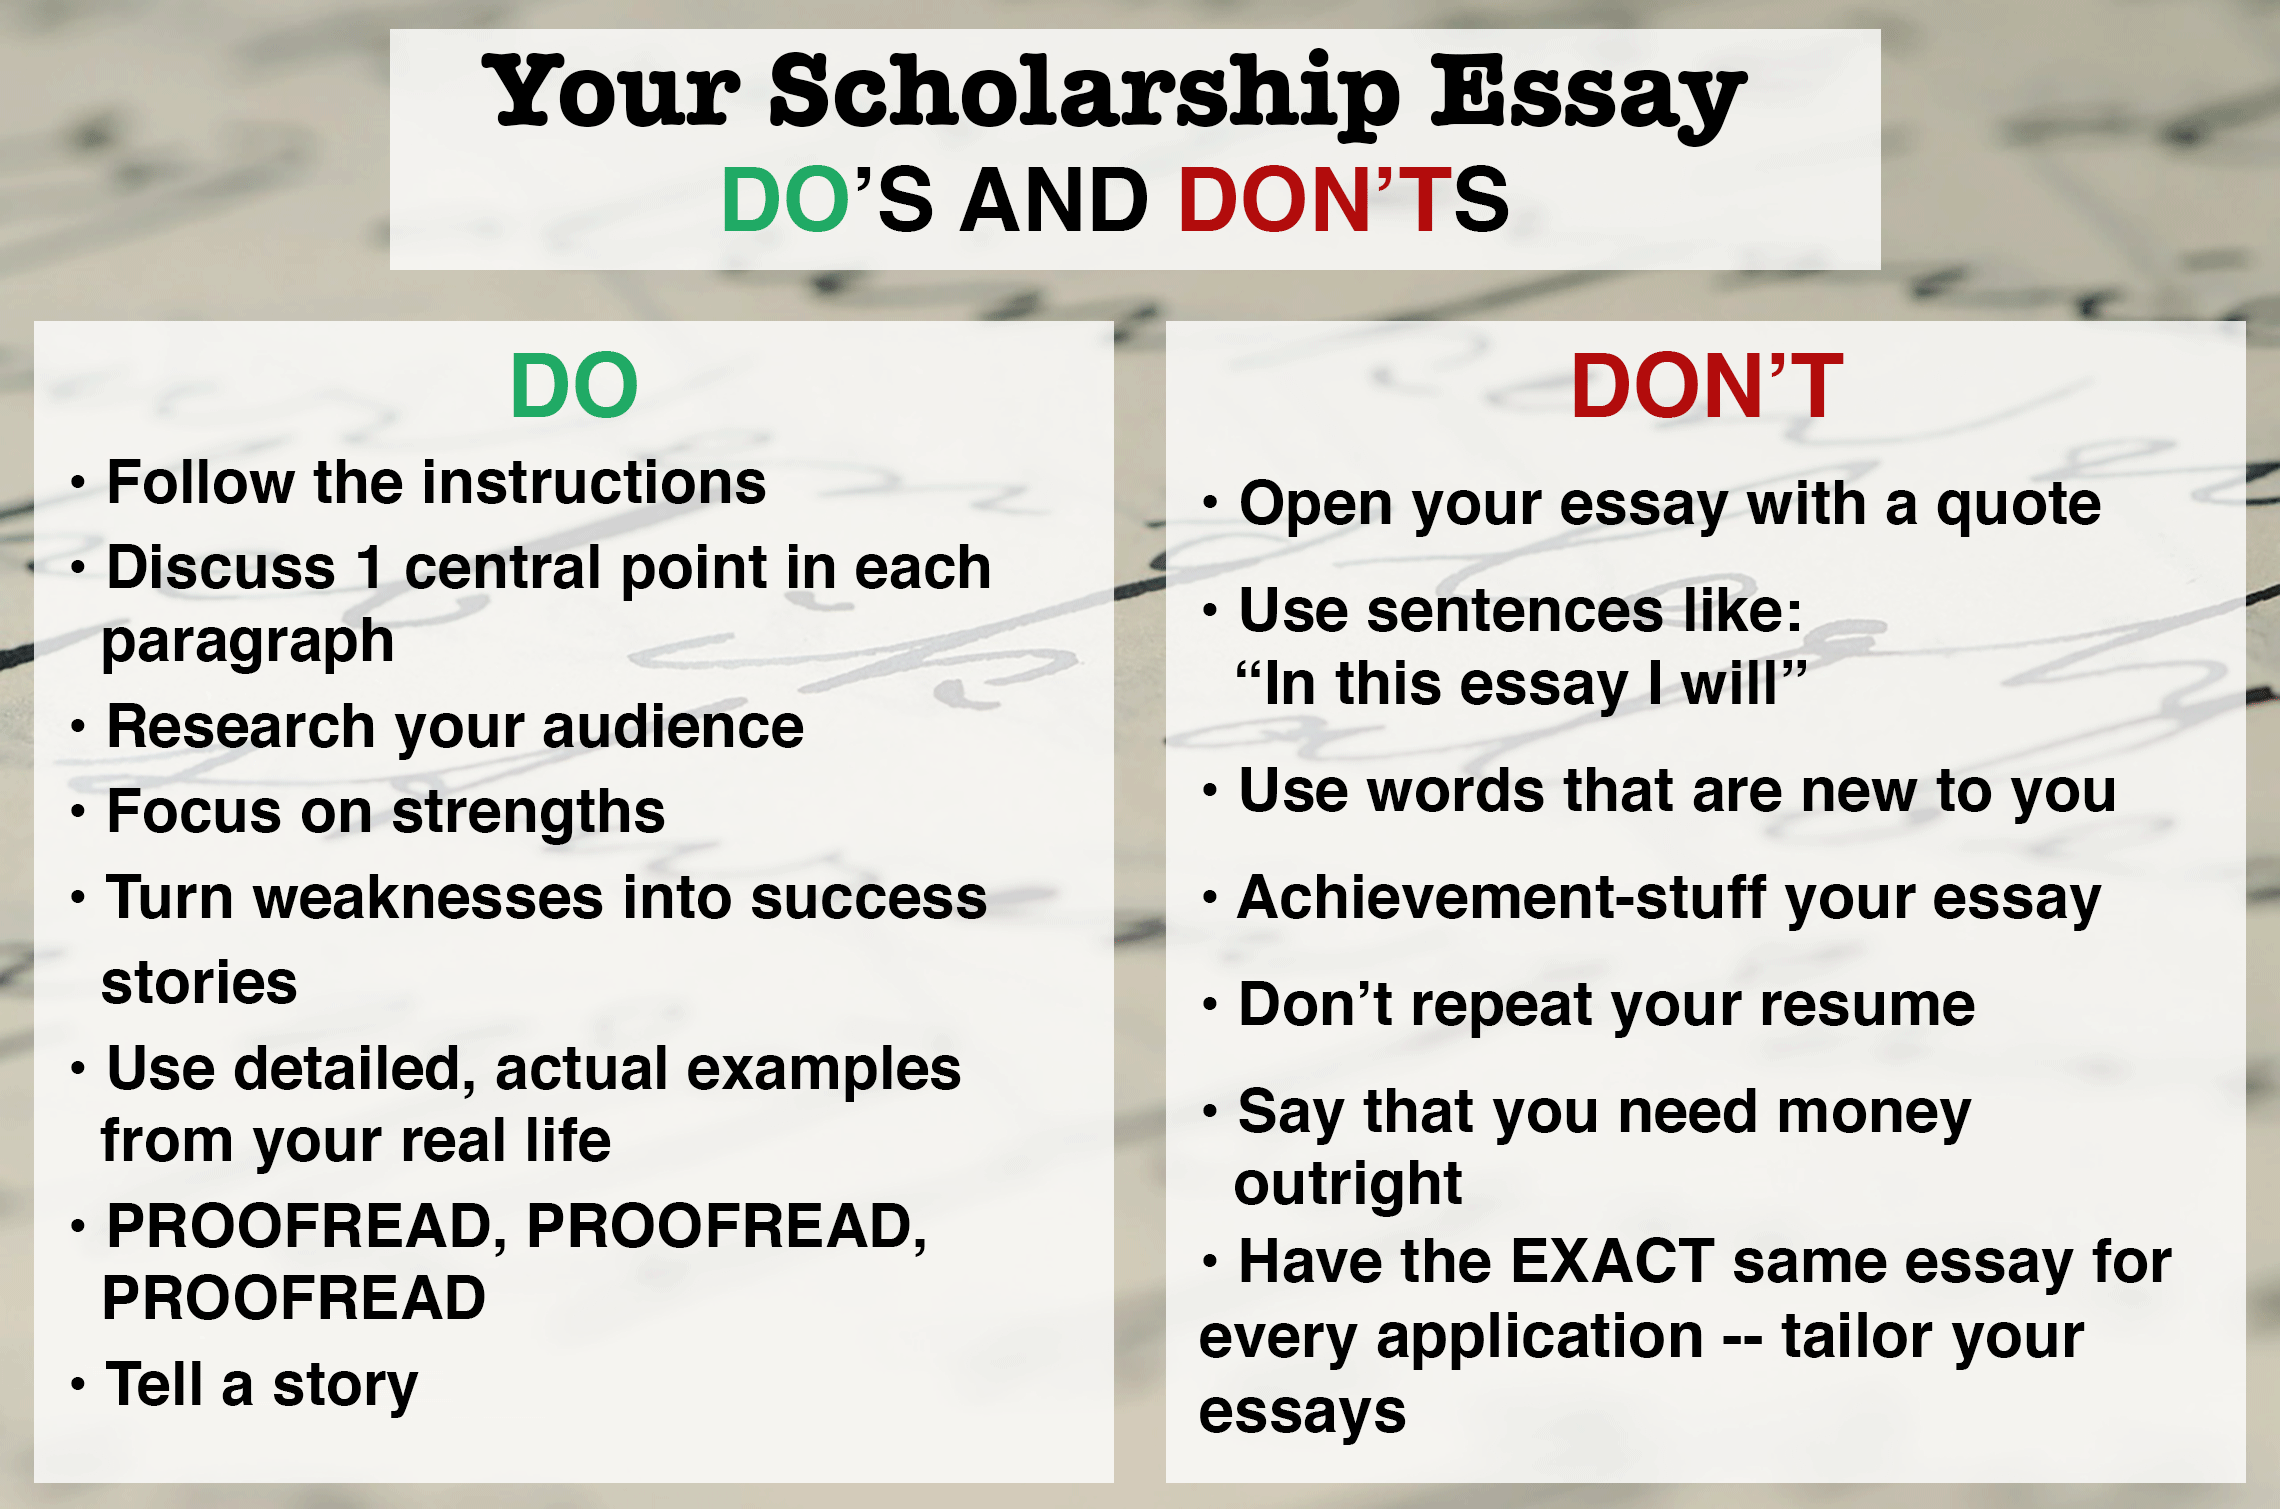 Proposal Essay Topics Ideas Dosdontsscholes Reflective Essay Thesis also Examples Of A Thesis Statement For An Essay How To Write A Winning Scholarship Essay In  Steps Healthy Mind In A Healthy Body Essay